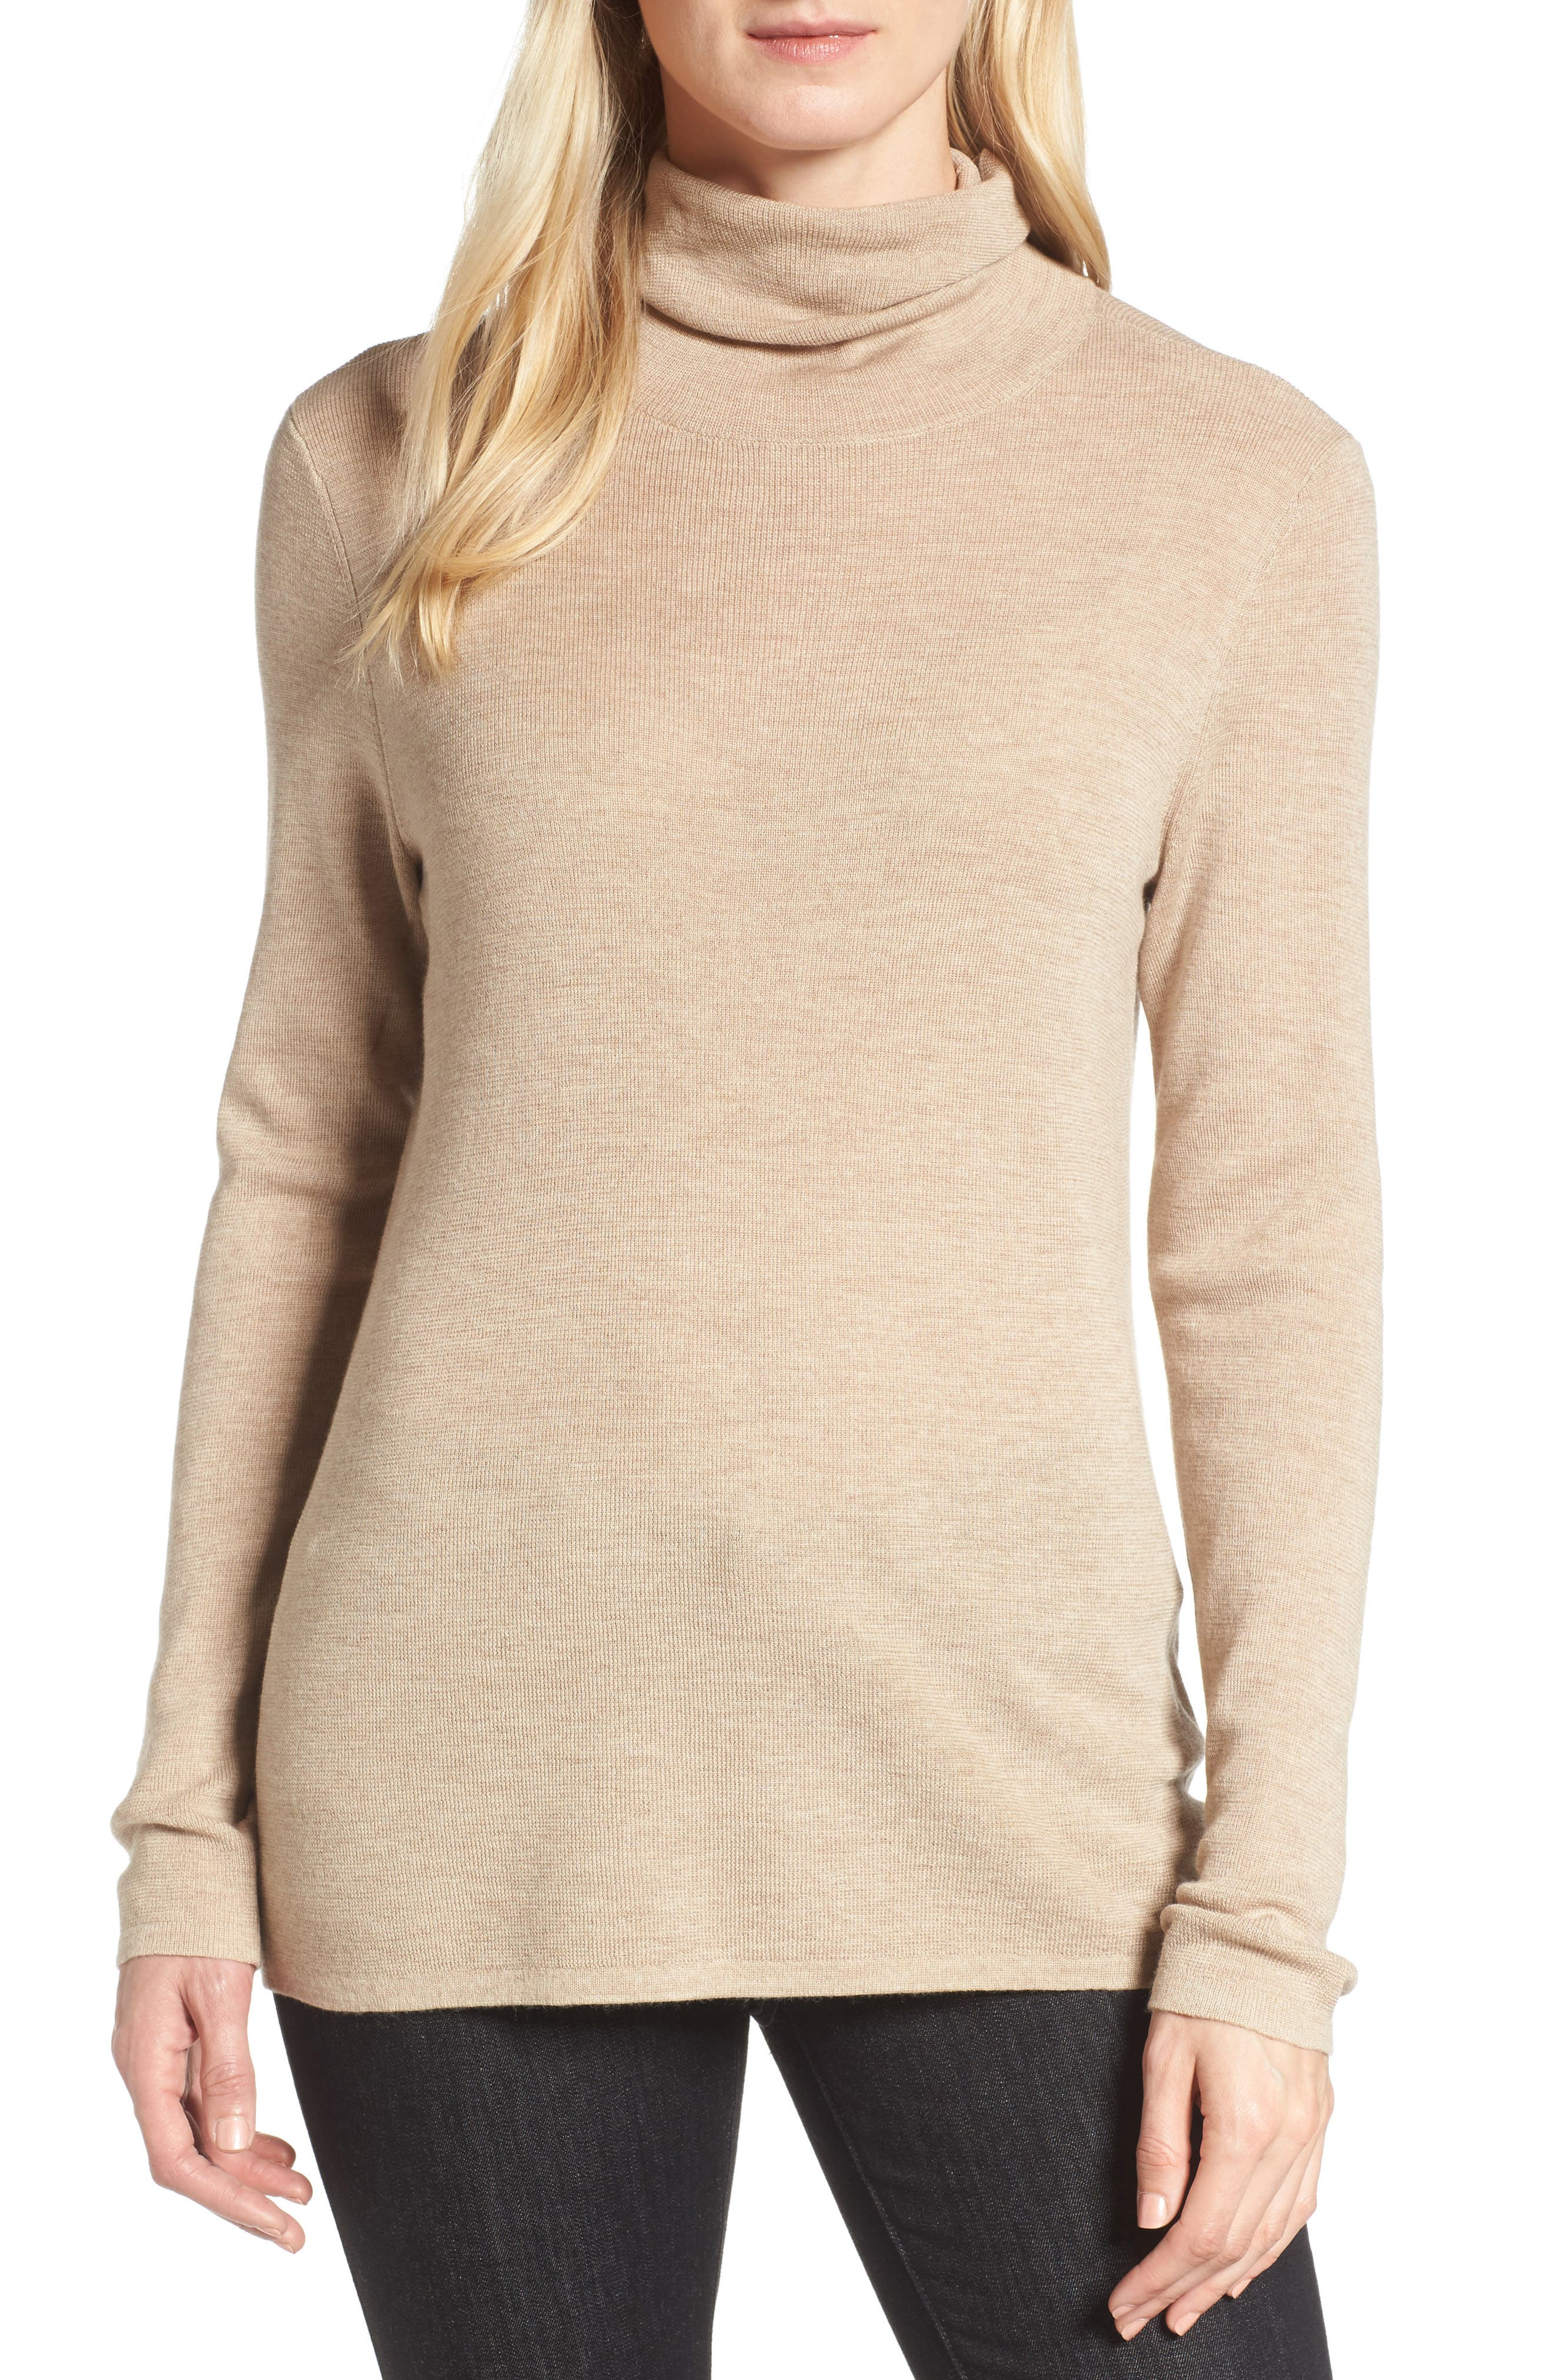 The Fisher Project Ultrafine Merino Turtleneck Sweater,                             Main thumbnail 1, color,                             Maple Oat